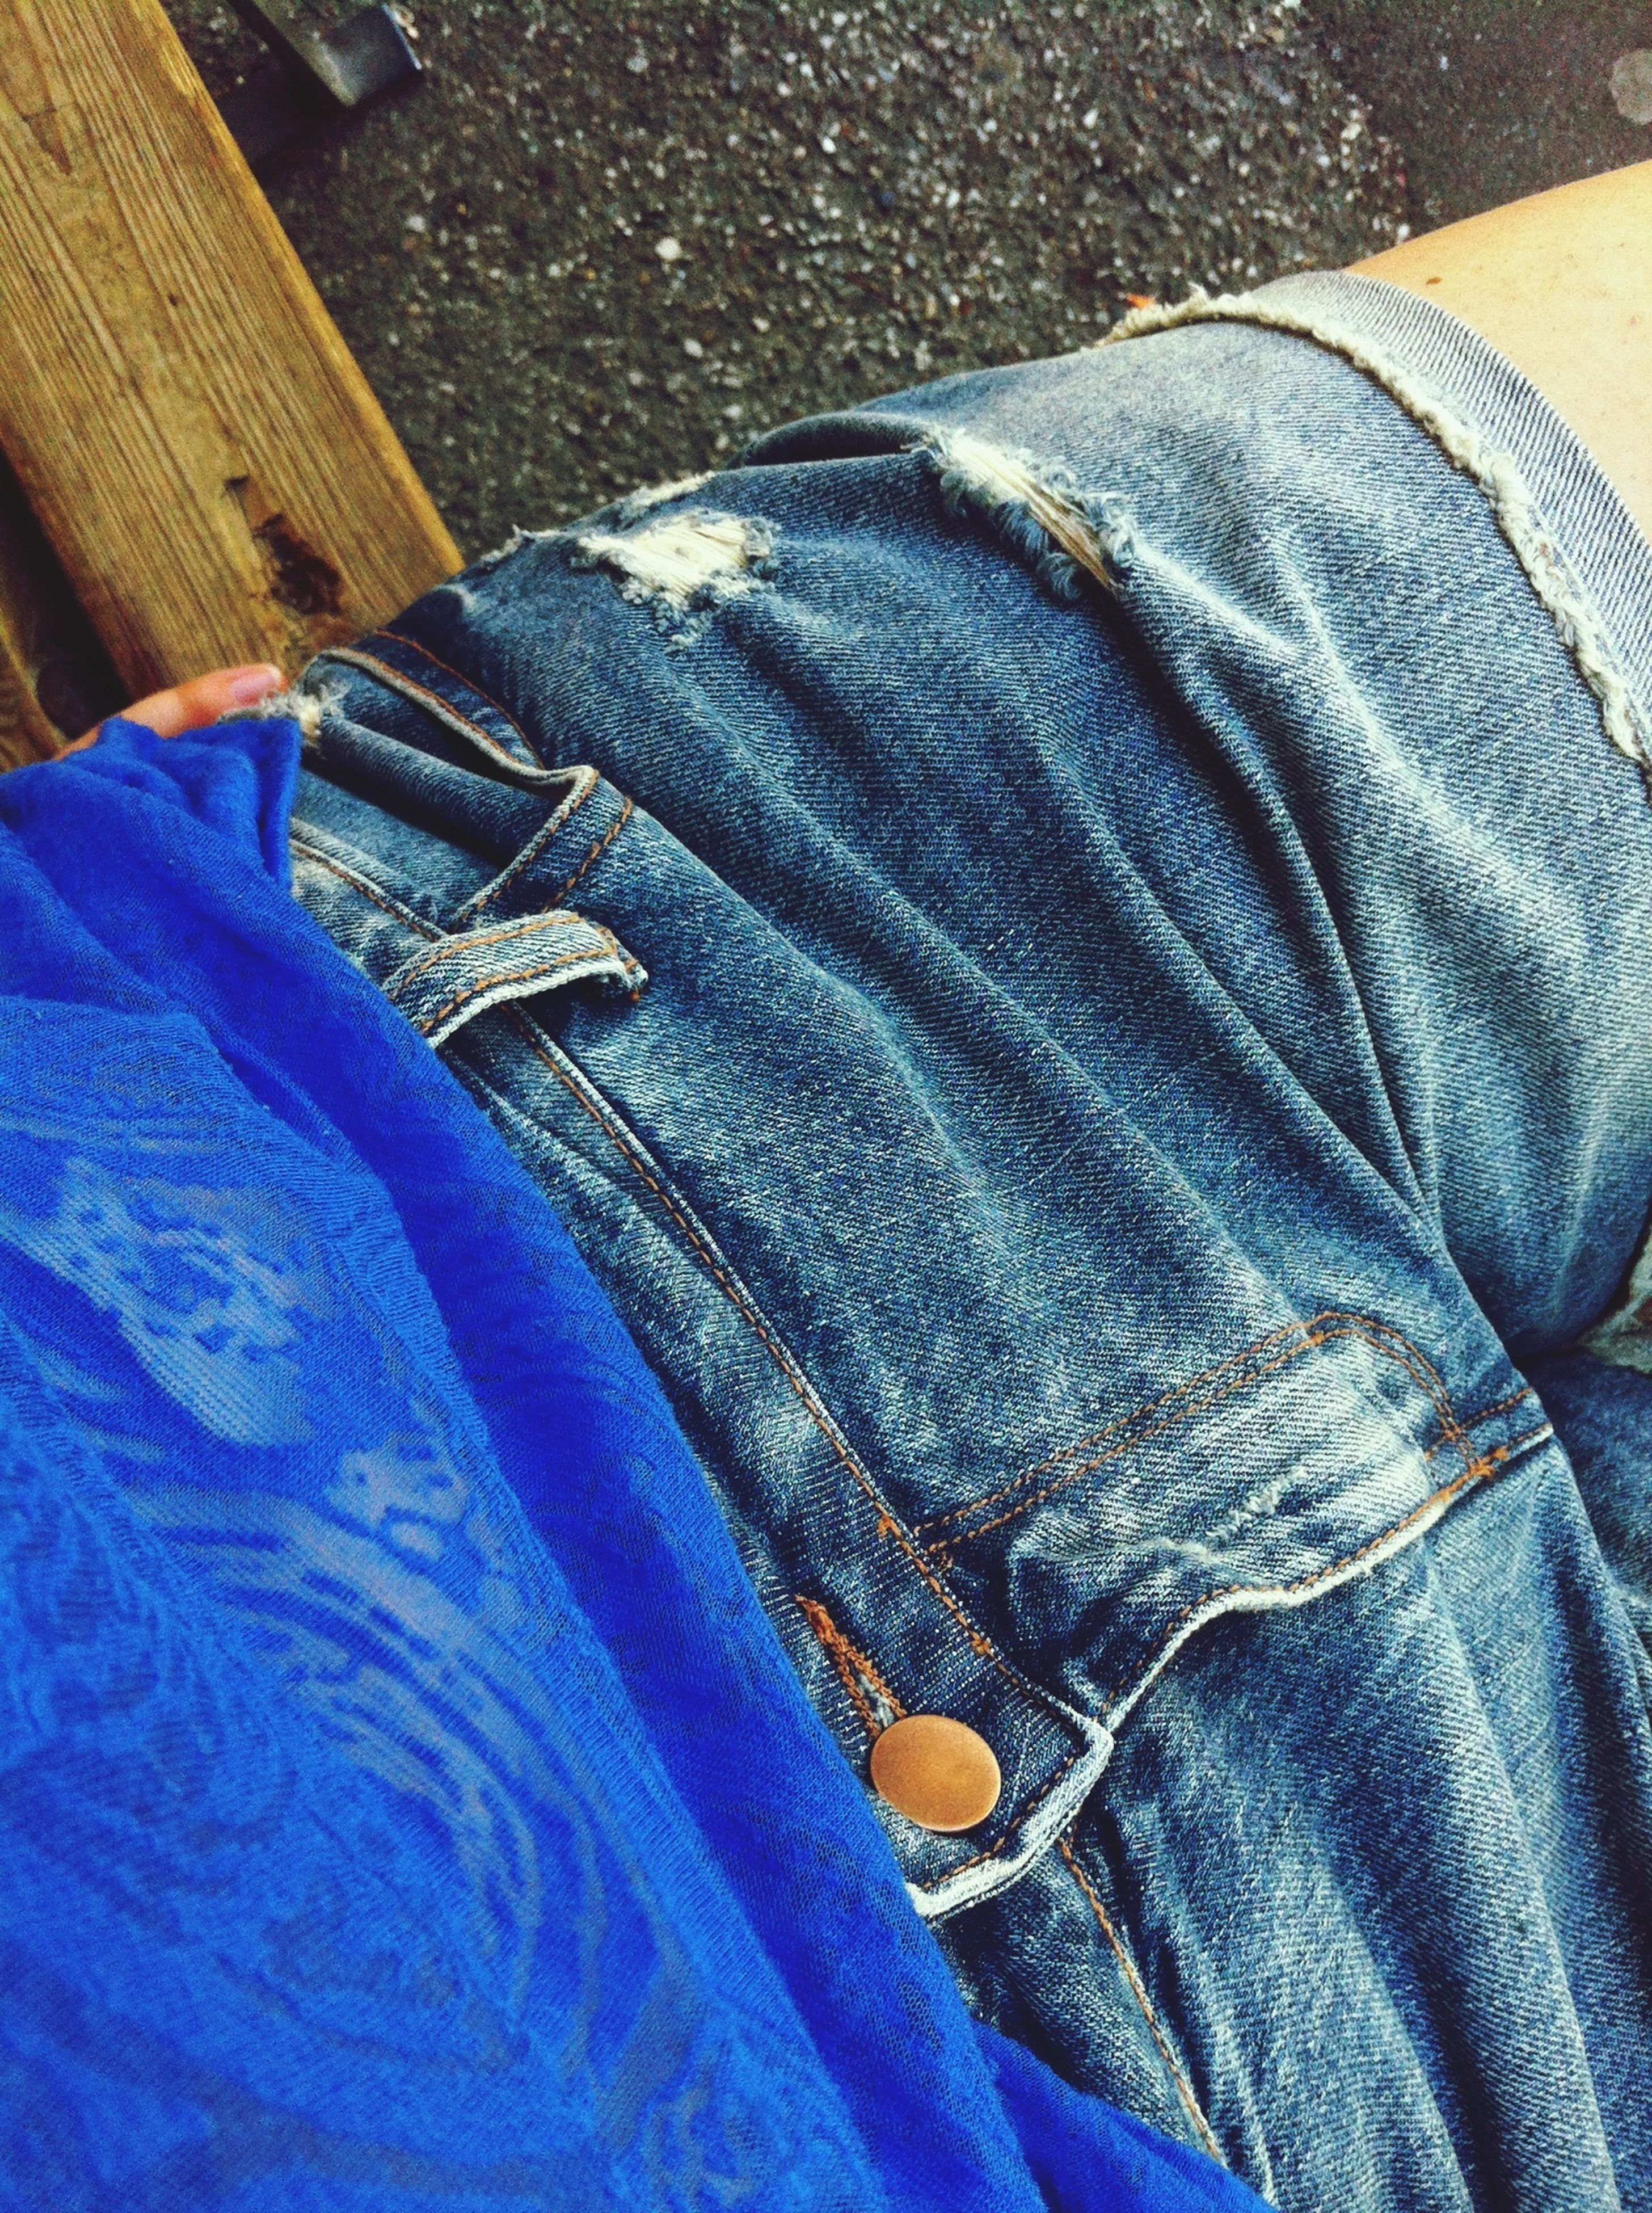 blue, low section, jeans, person, high angle view, wood - material, relaxation, shoe, day, outdoors, fabric, wooden, textile, close-up, personal perspective, men